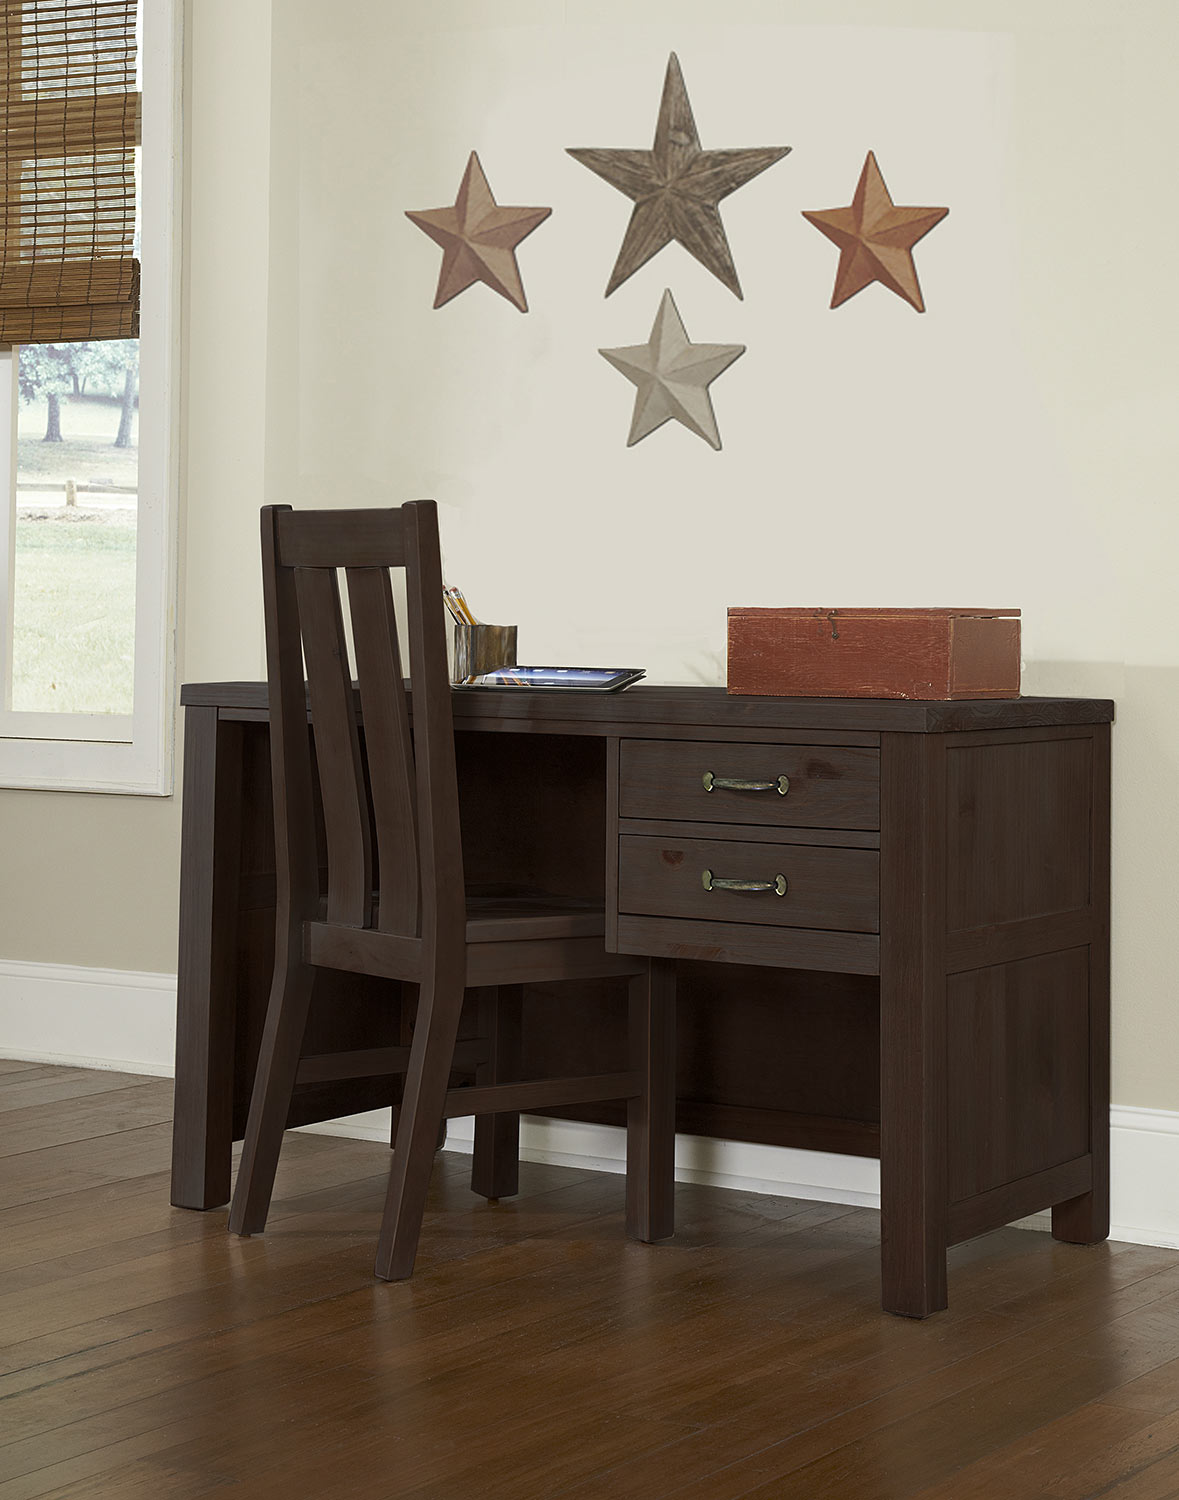 NE Kids Highlands Desk with Chair - Espresso